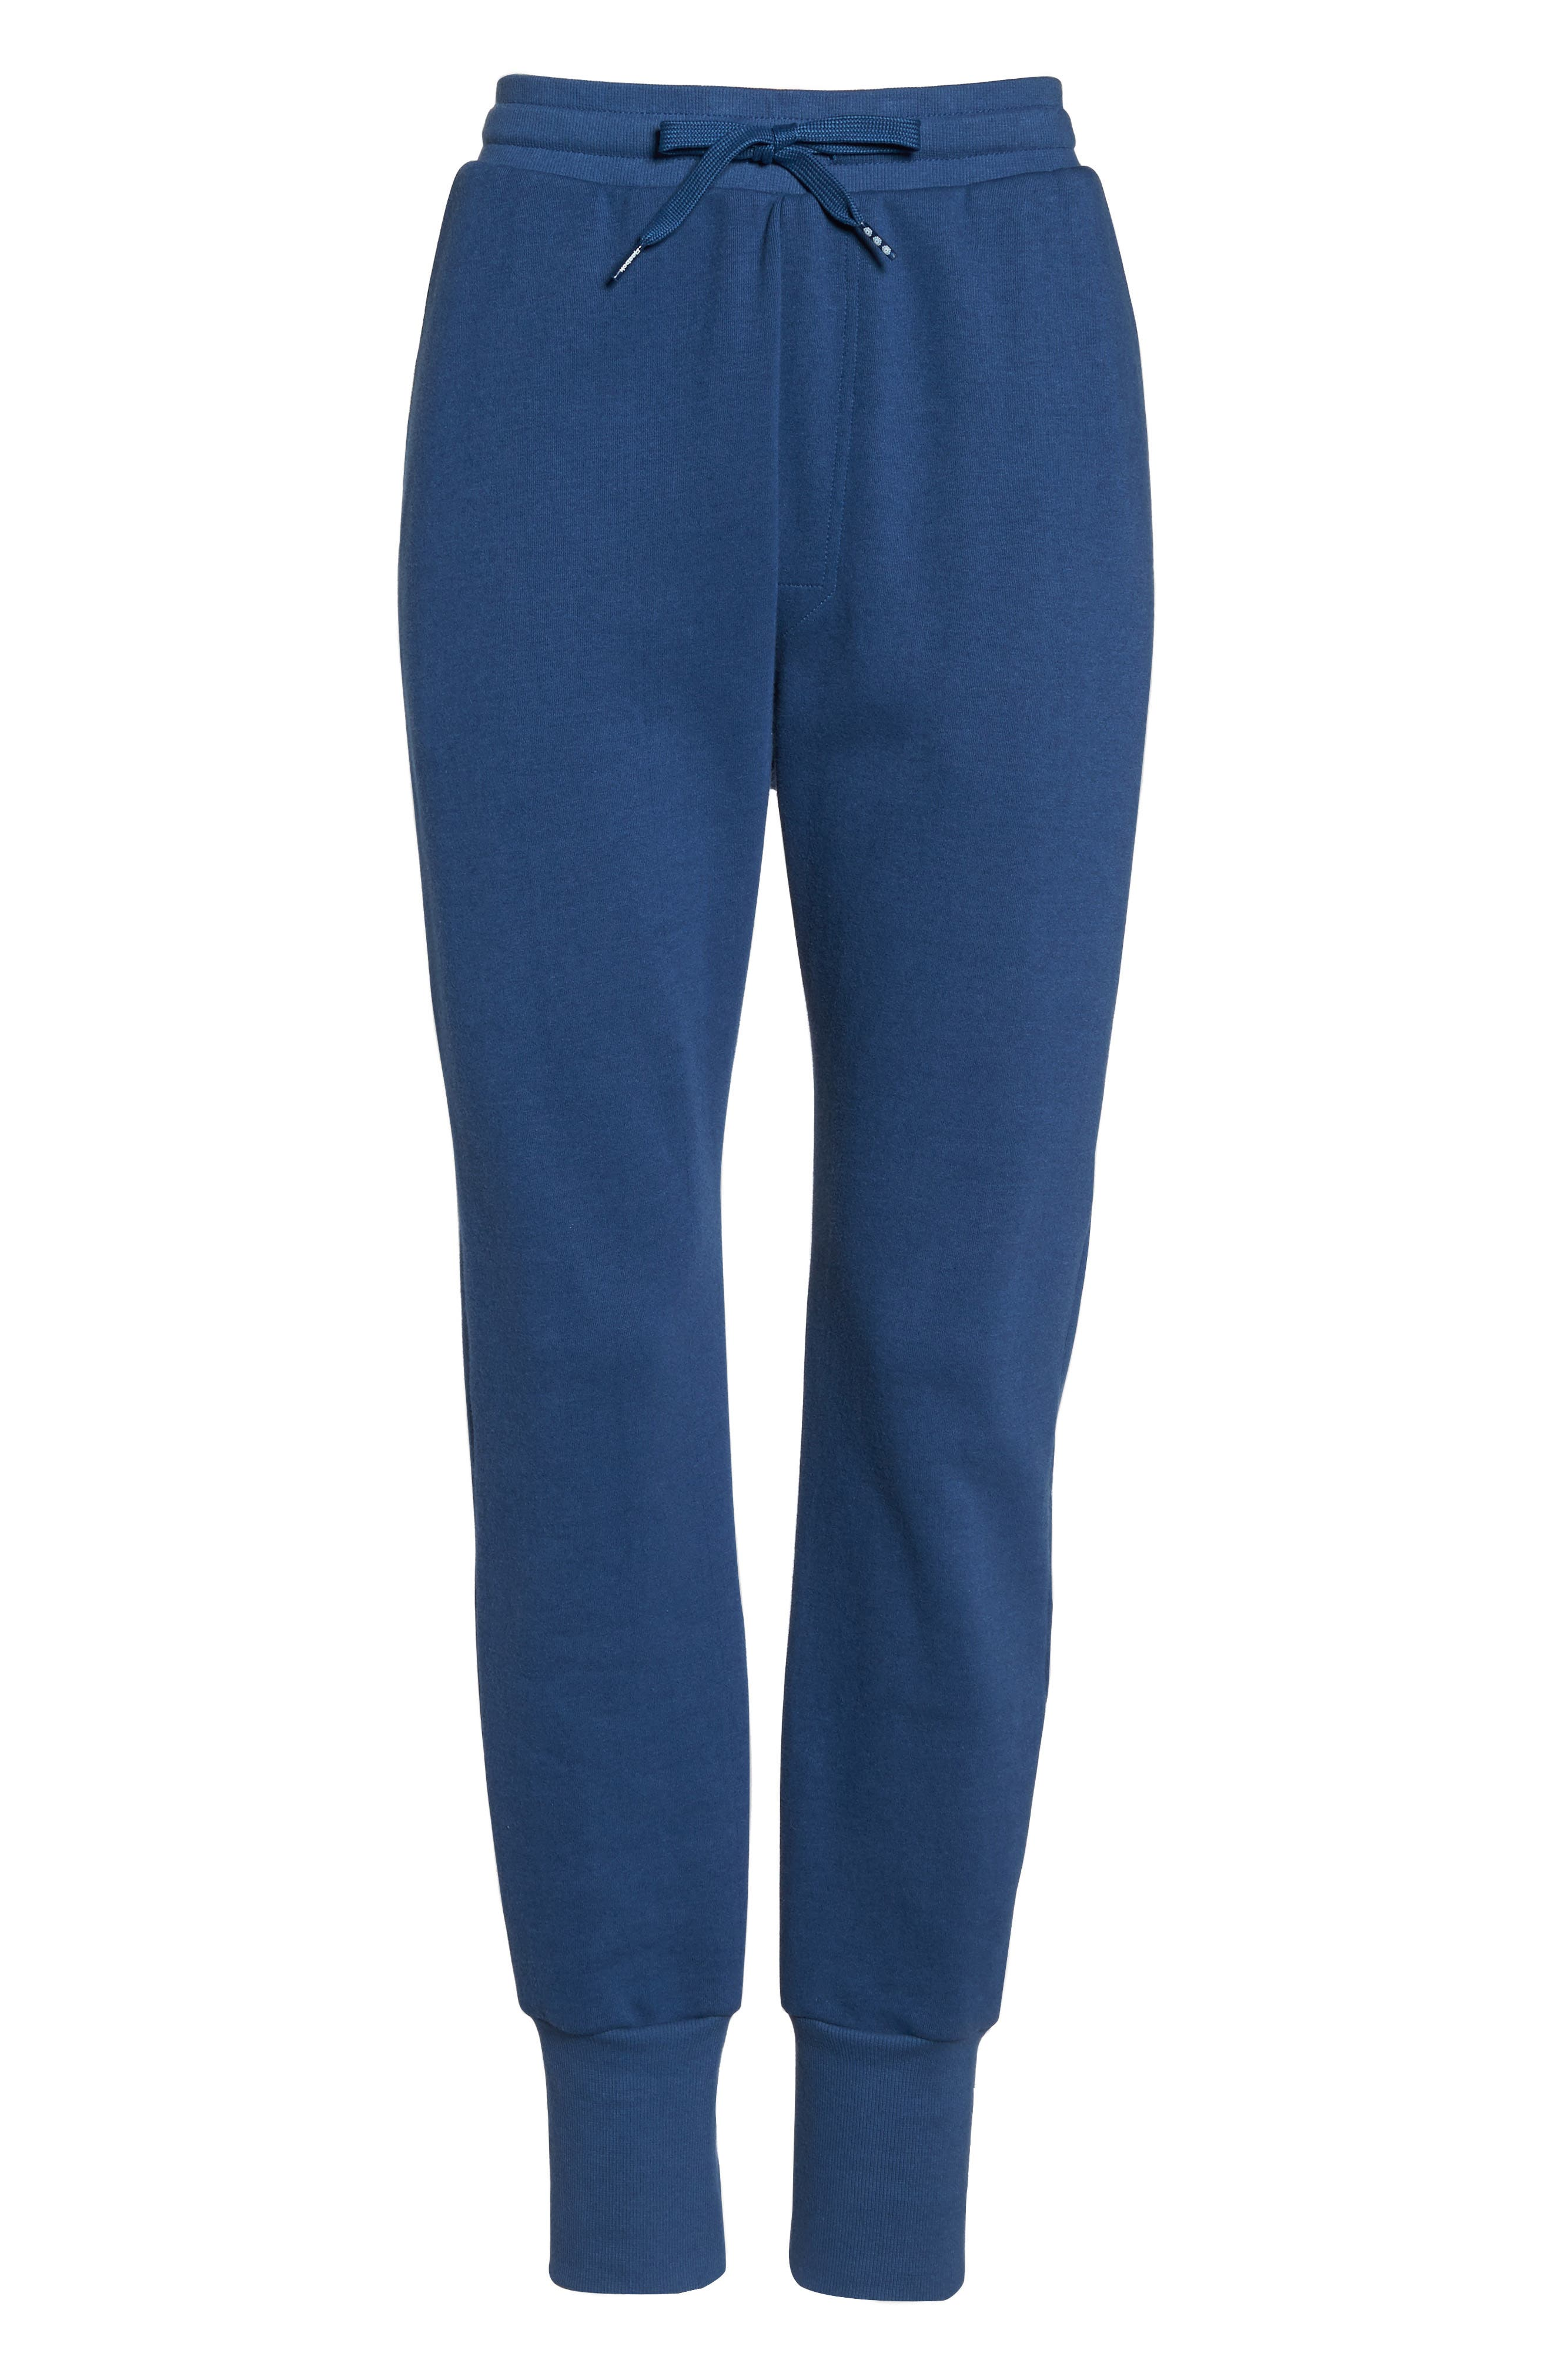 DC Jogger Pants,                             Alternate thumbnail 8, color,                             Washed Blue